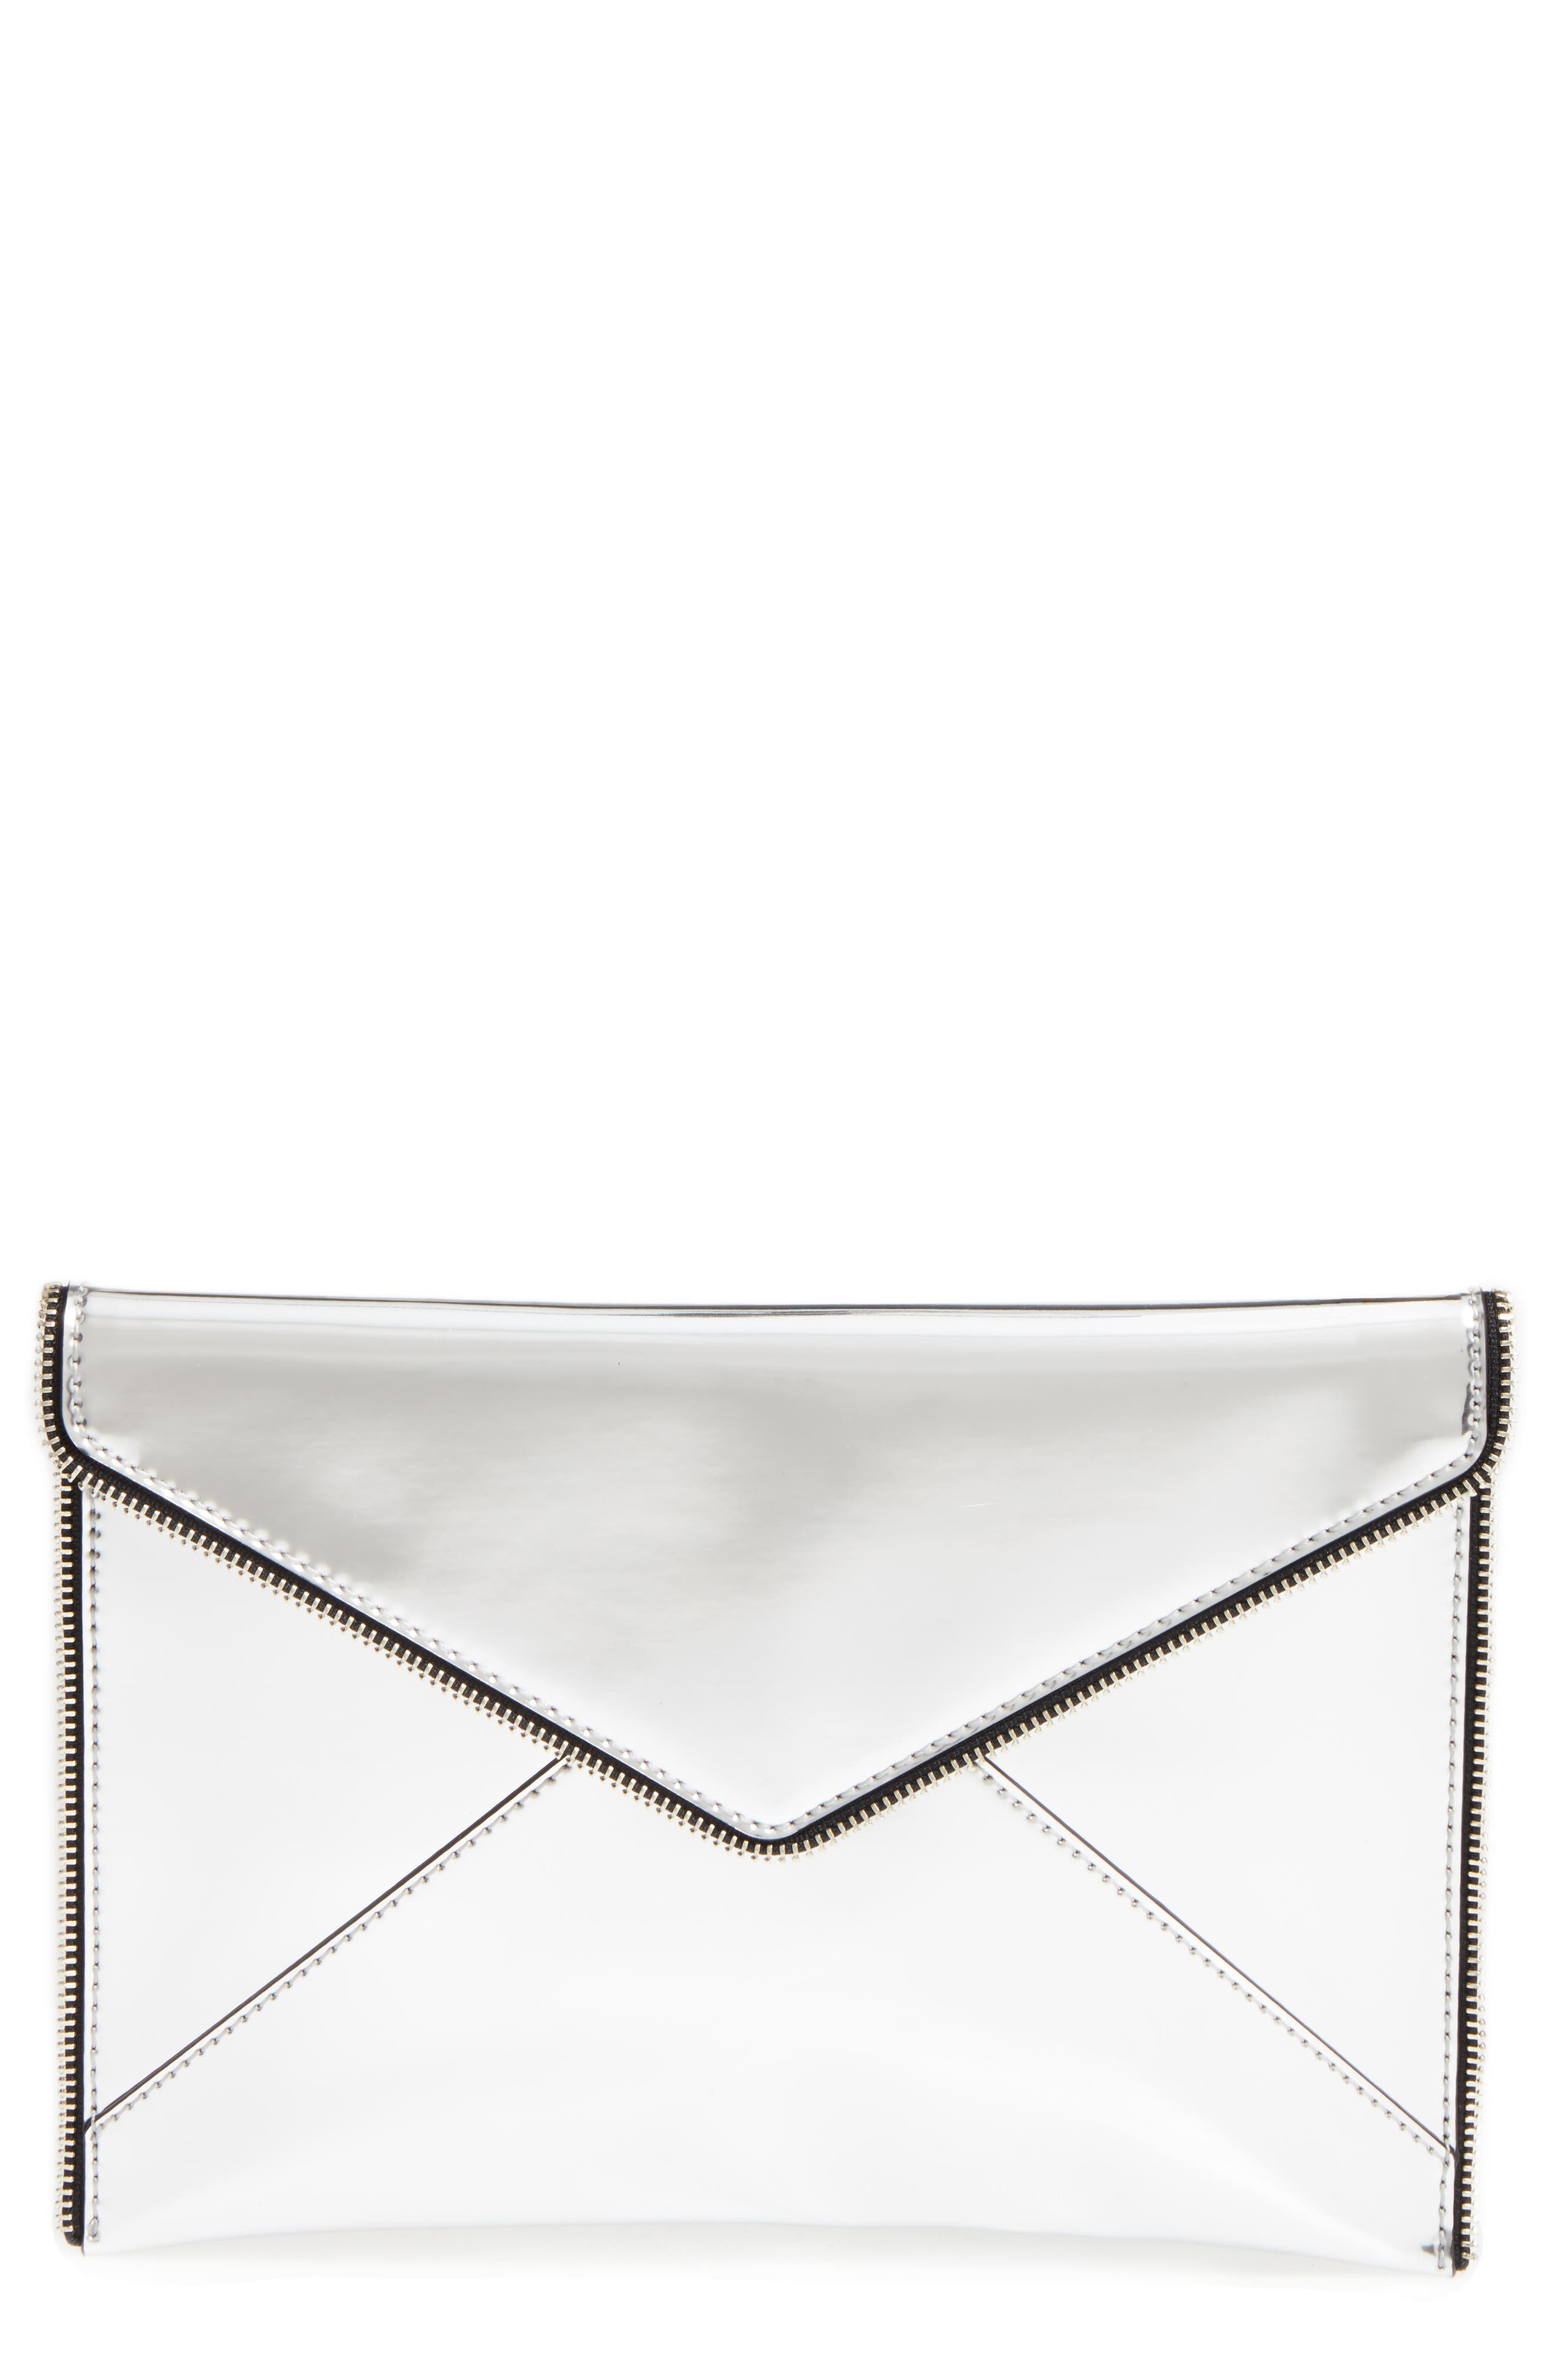 Alternate Image 1 Selected - Rebecca Minkoff Mirrored Leo Clutch